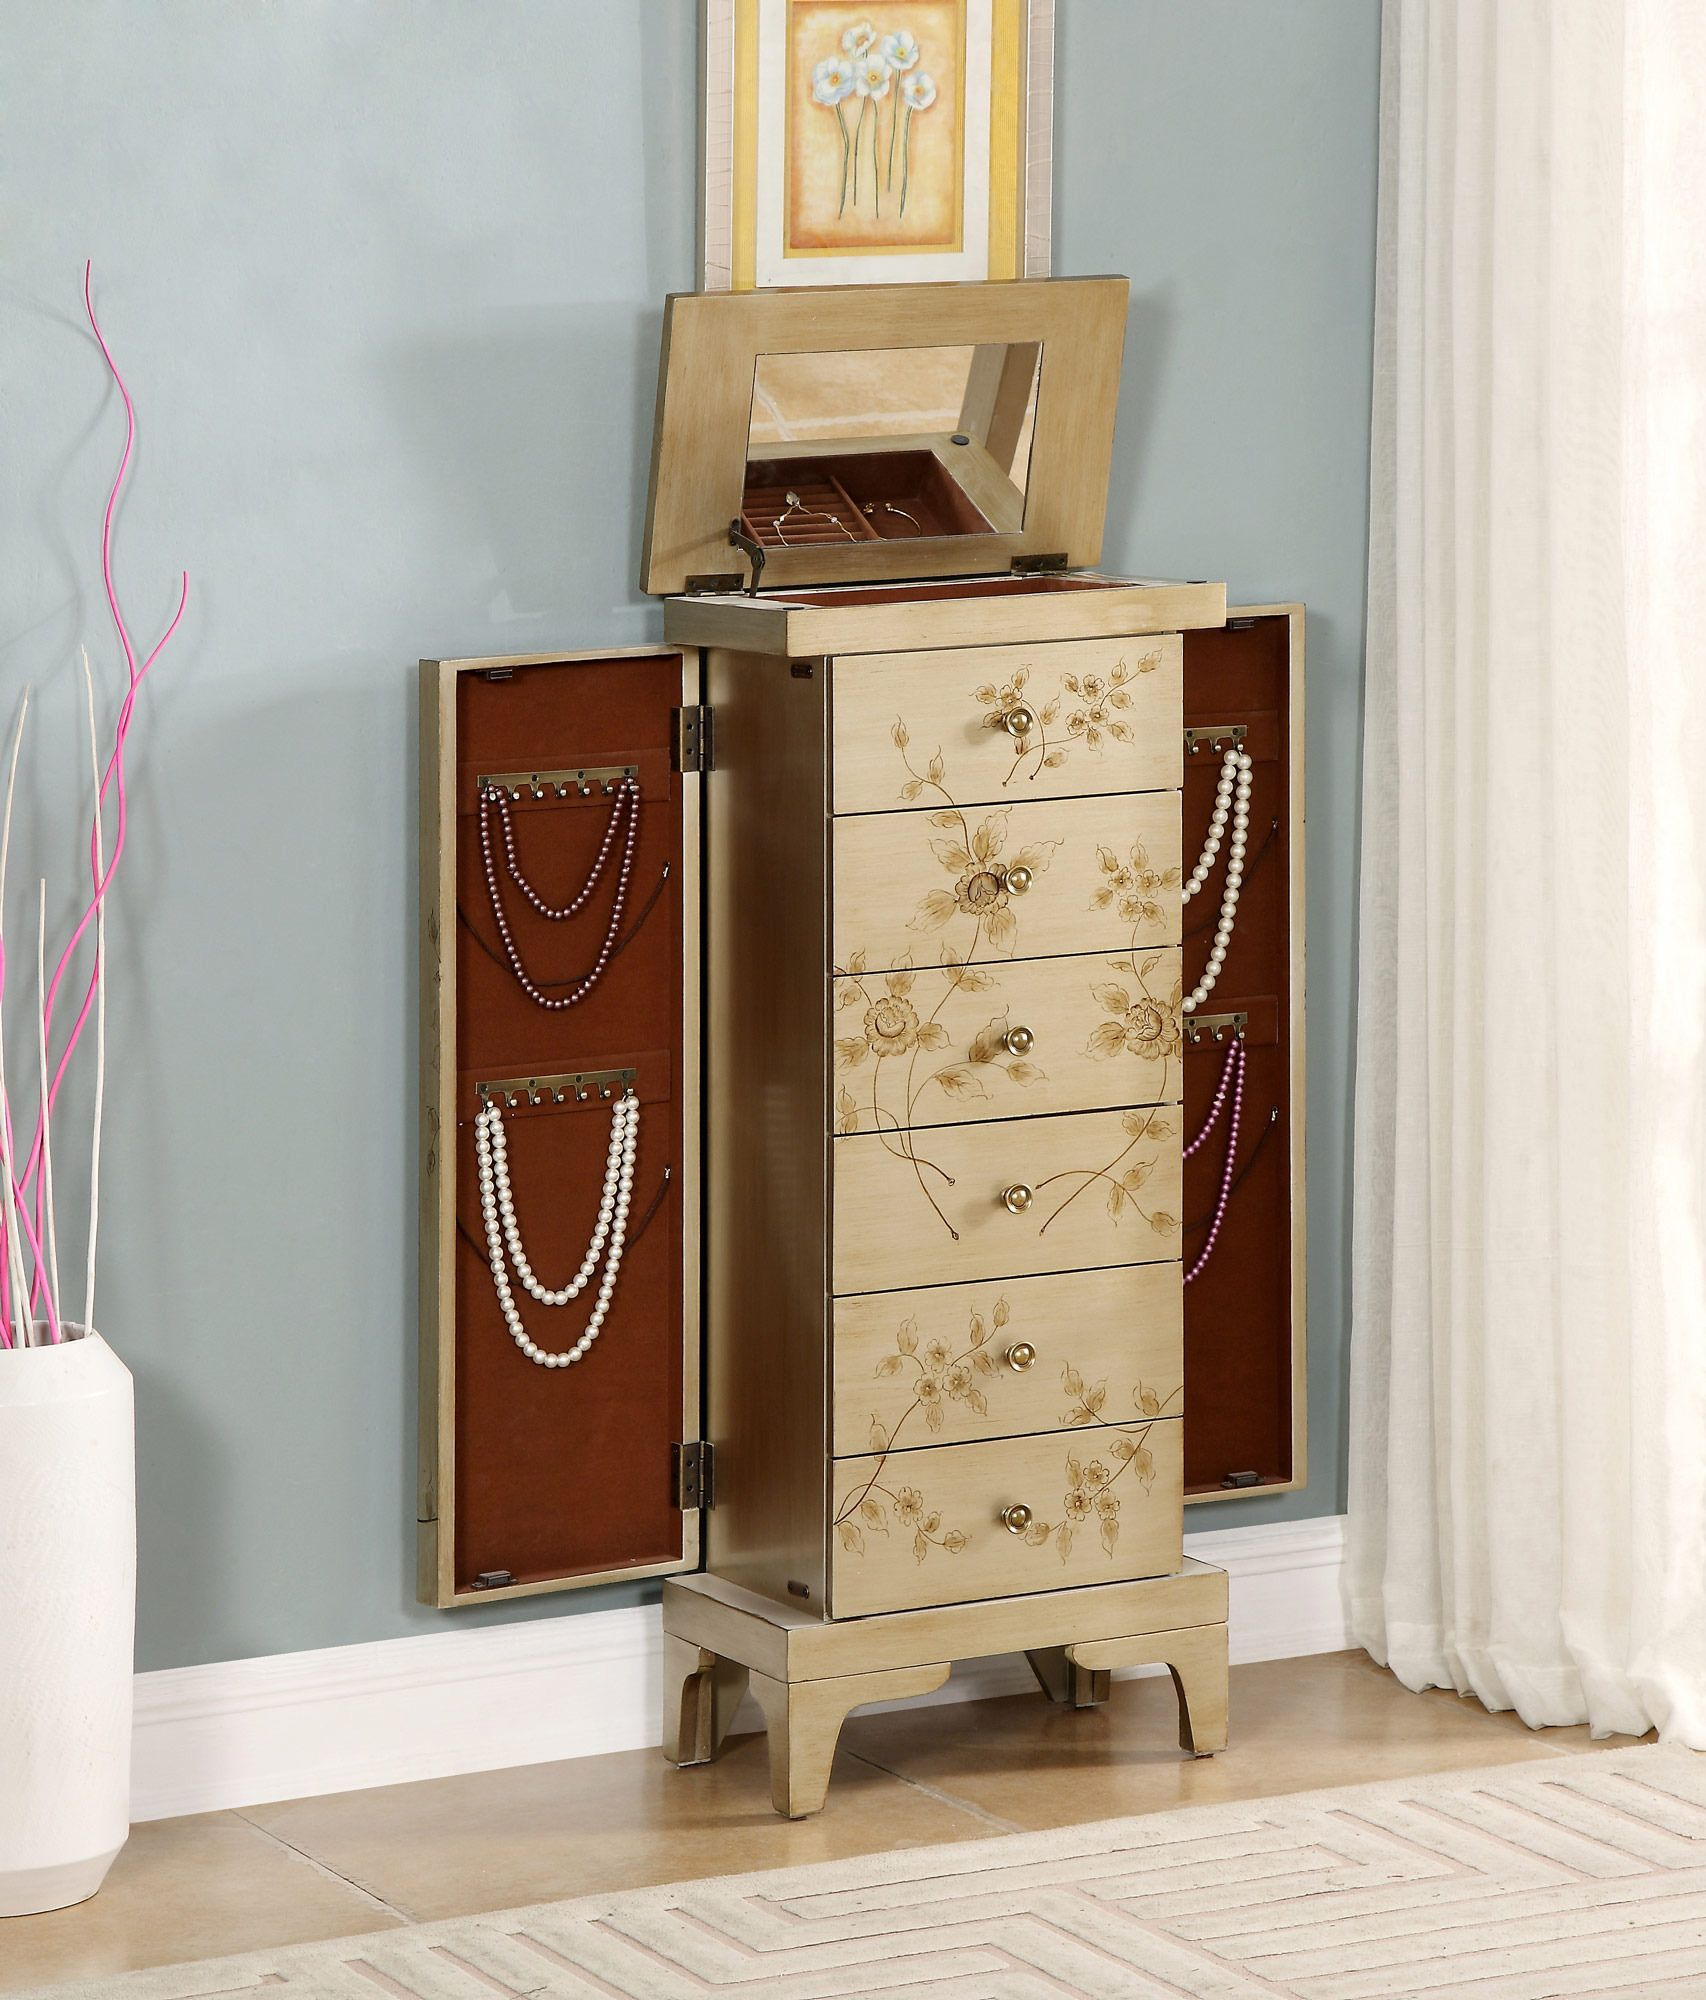 Jewelry Armoire in Gold | Coast to Coast Imports | Home Gallery ...